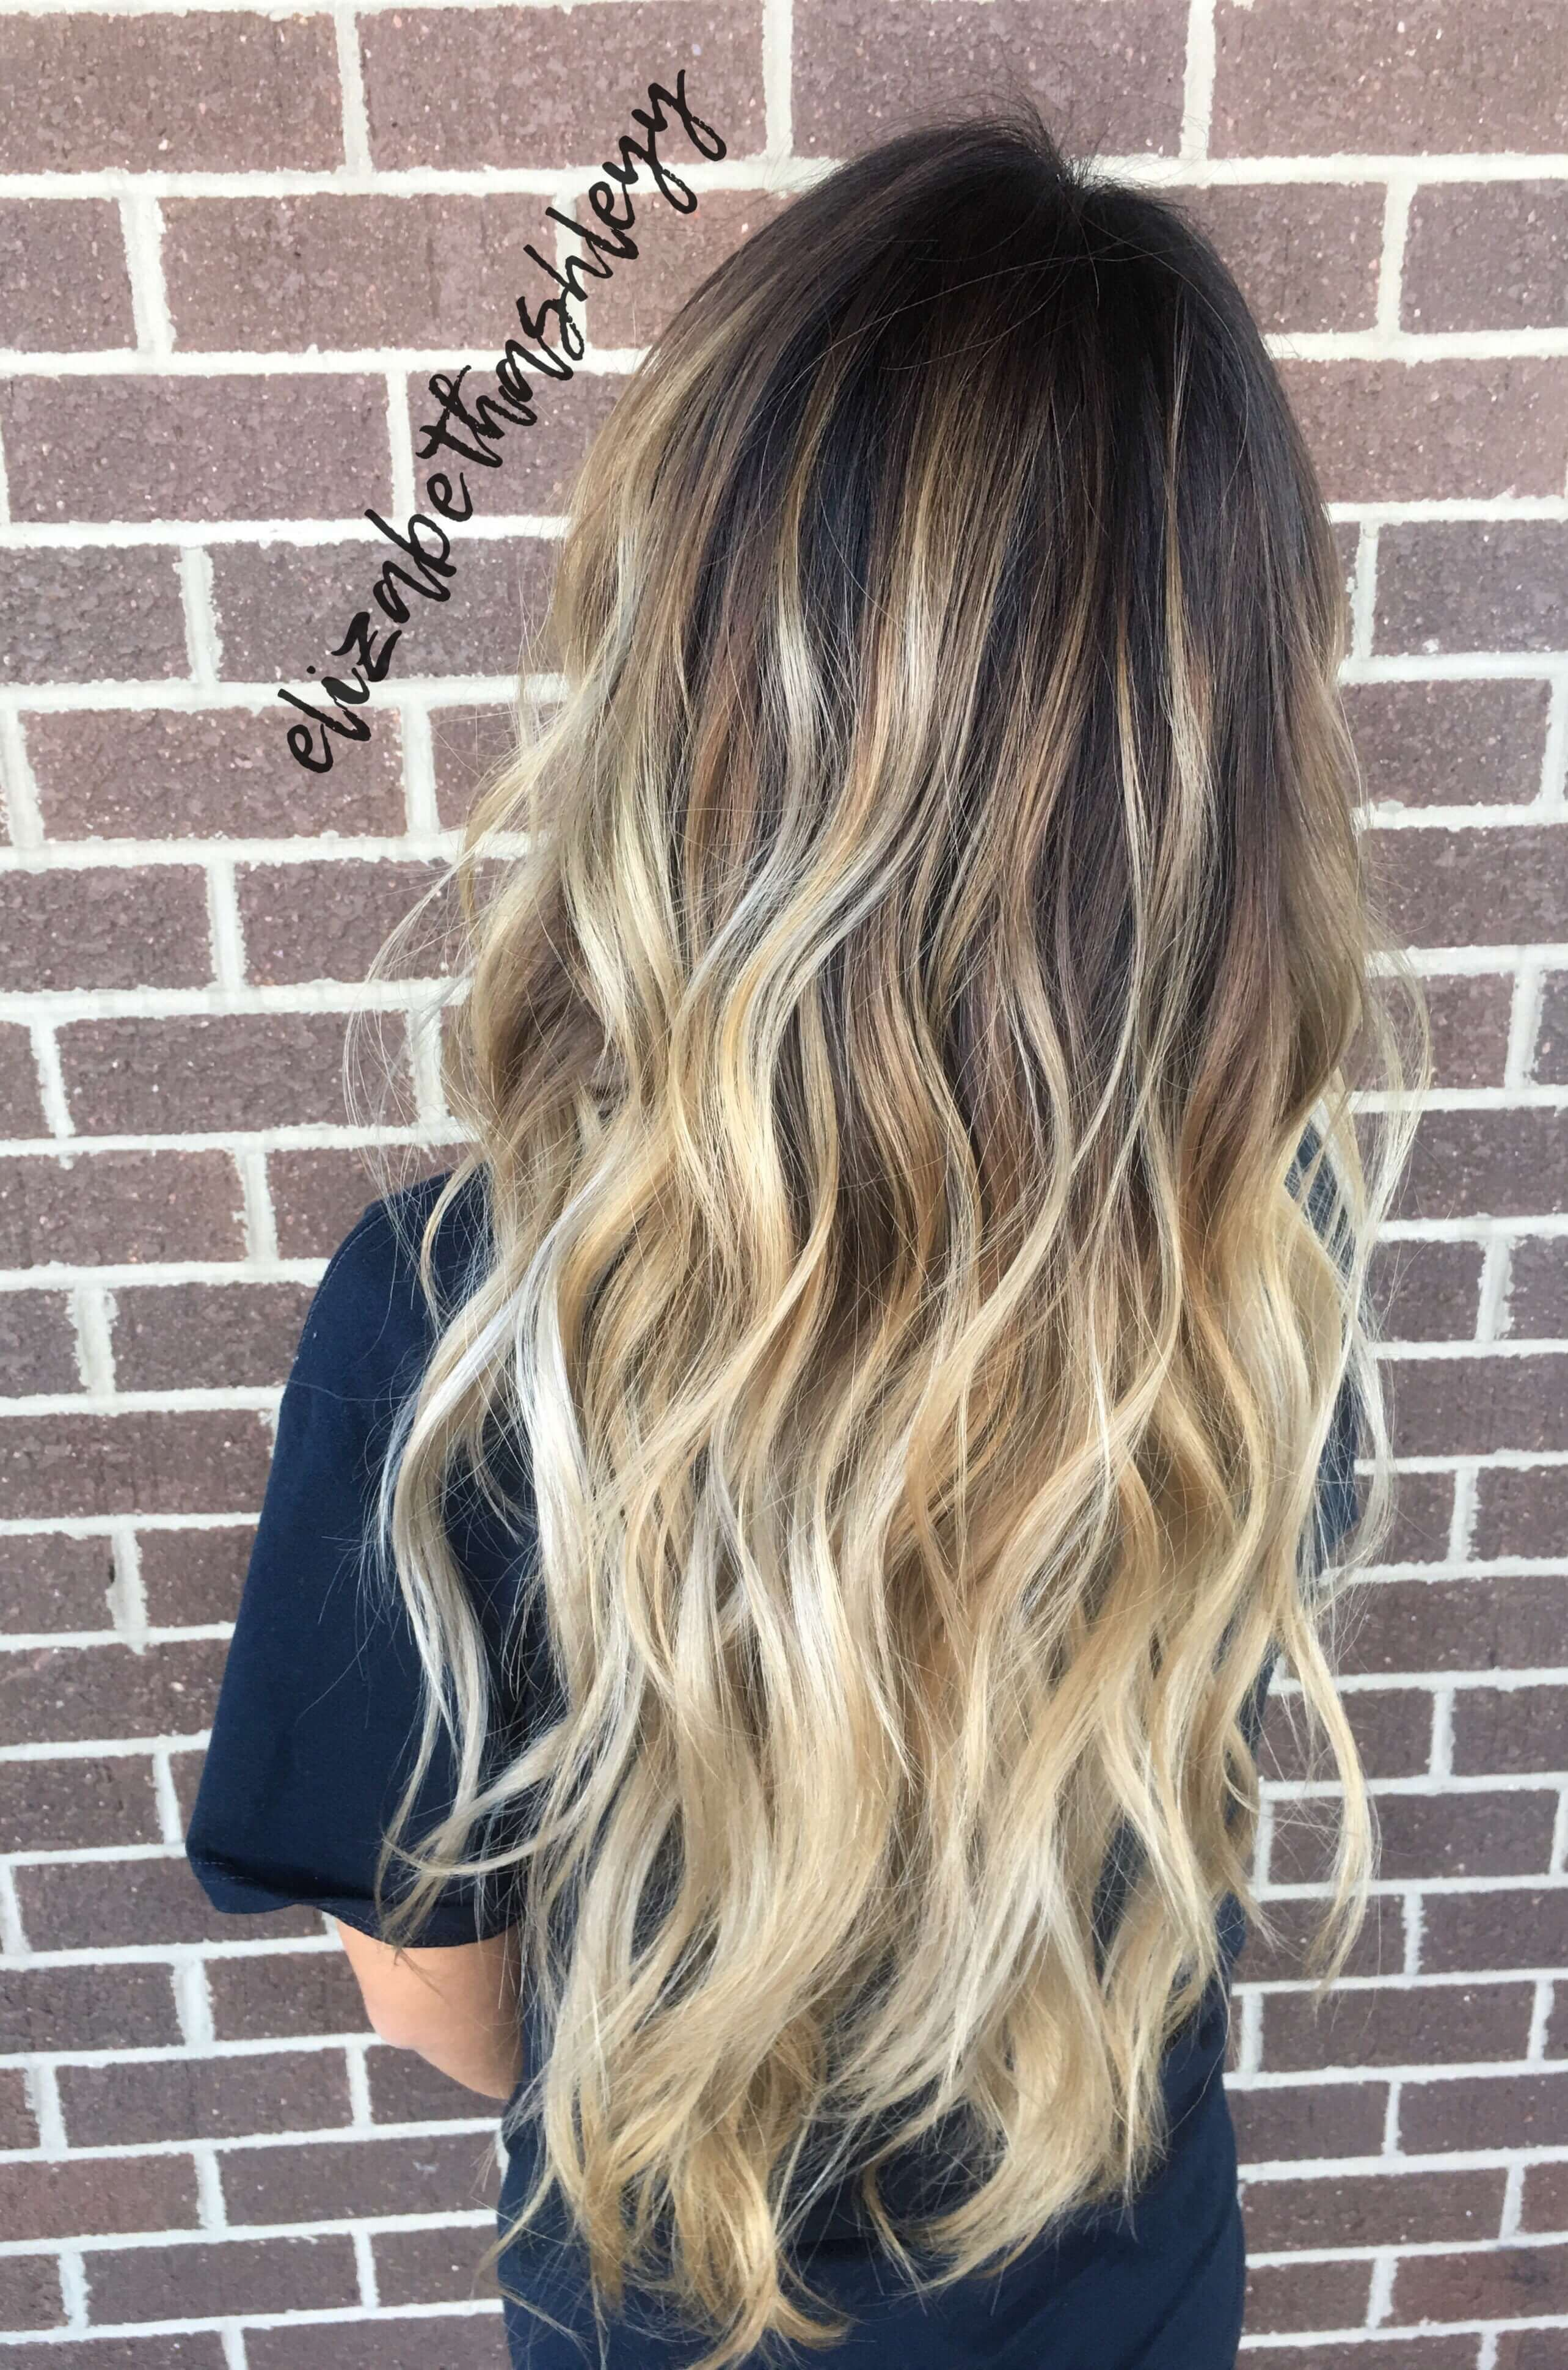 The Best 29 Gourgeous Balayage Hairstyles Fashion Beauty Hair Pictures